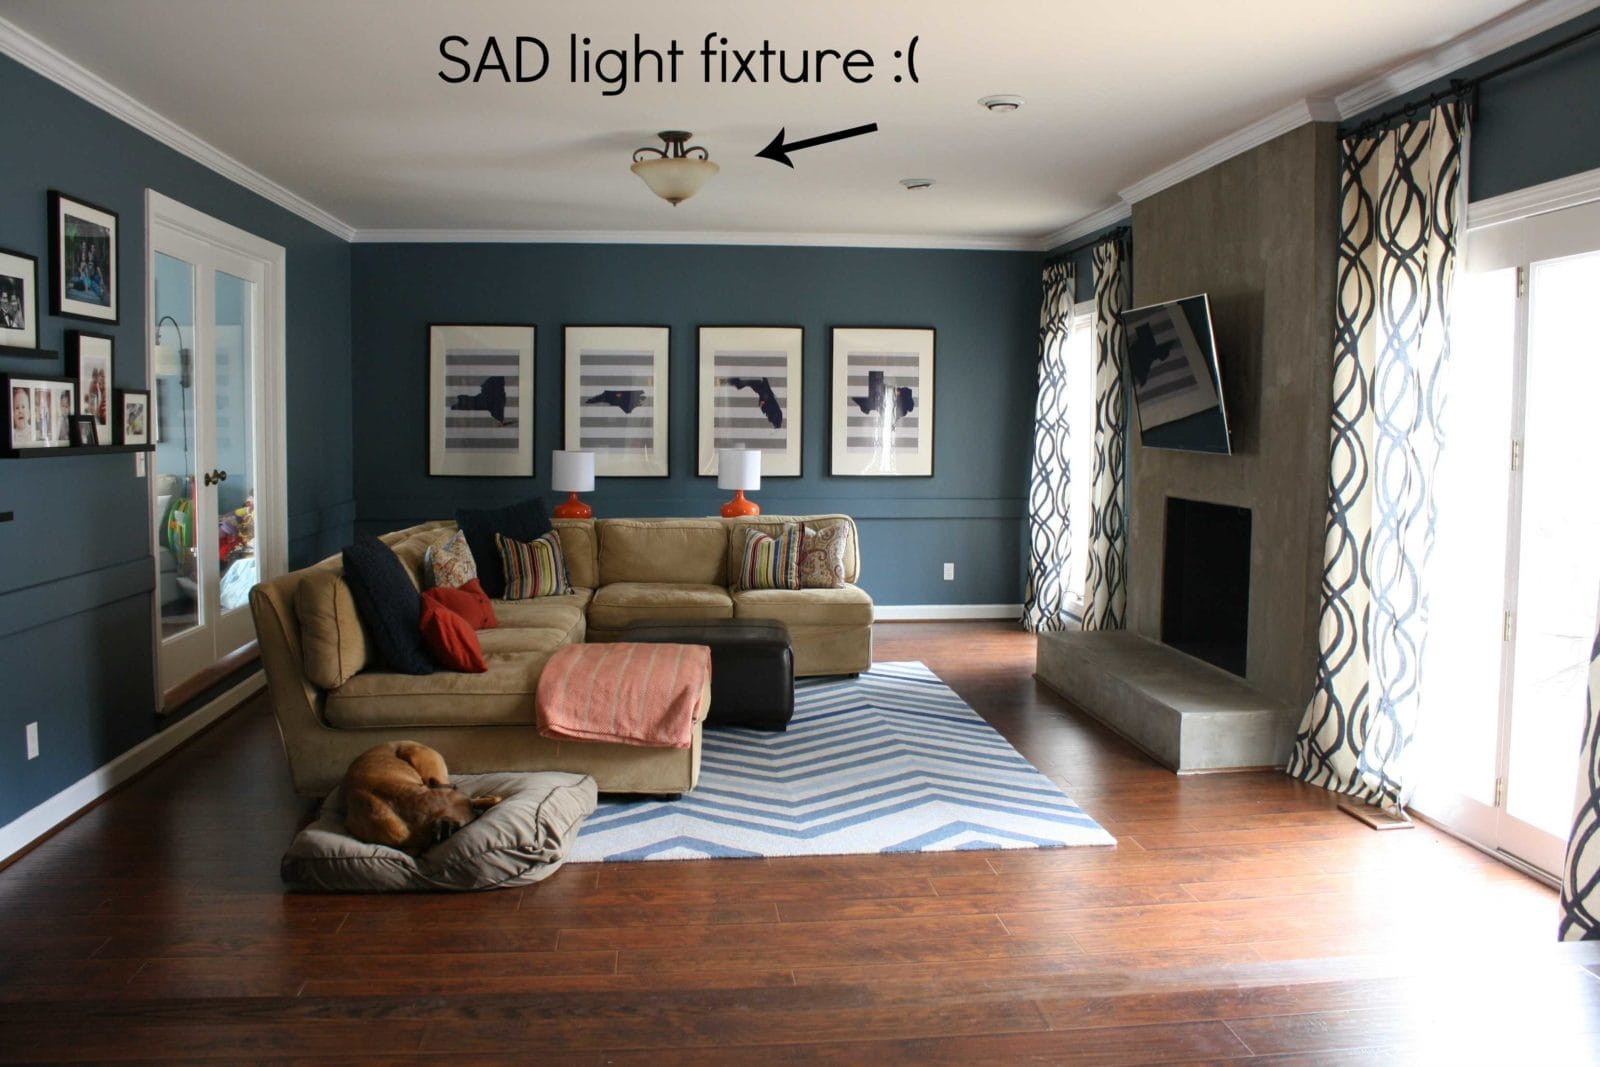 Best ideas about Family Room Lighting Fixtures . Save or Pin A Stylish Lighting Update for the Family Room Now.